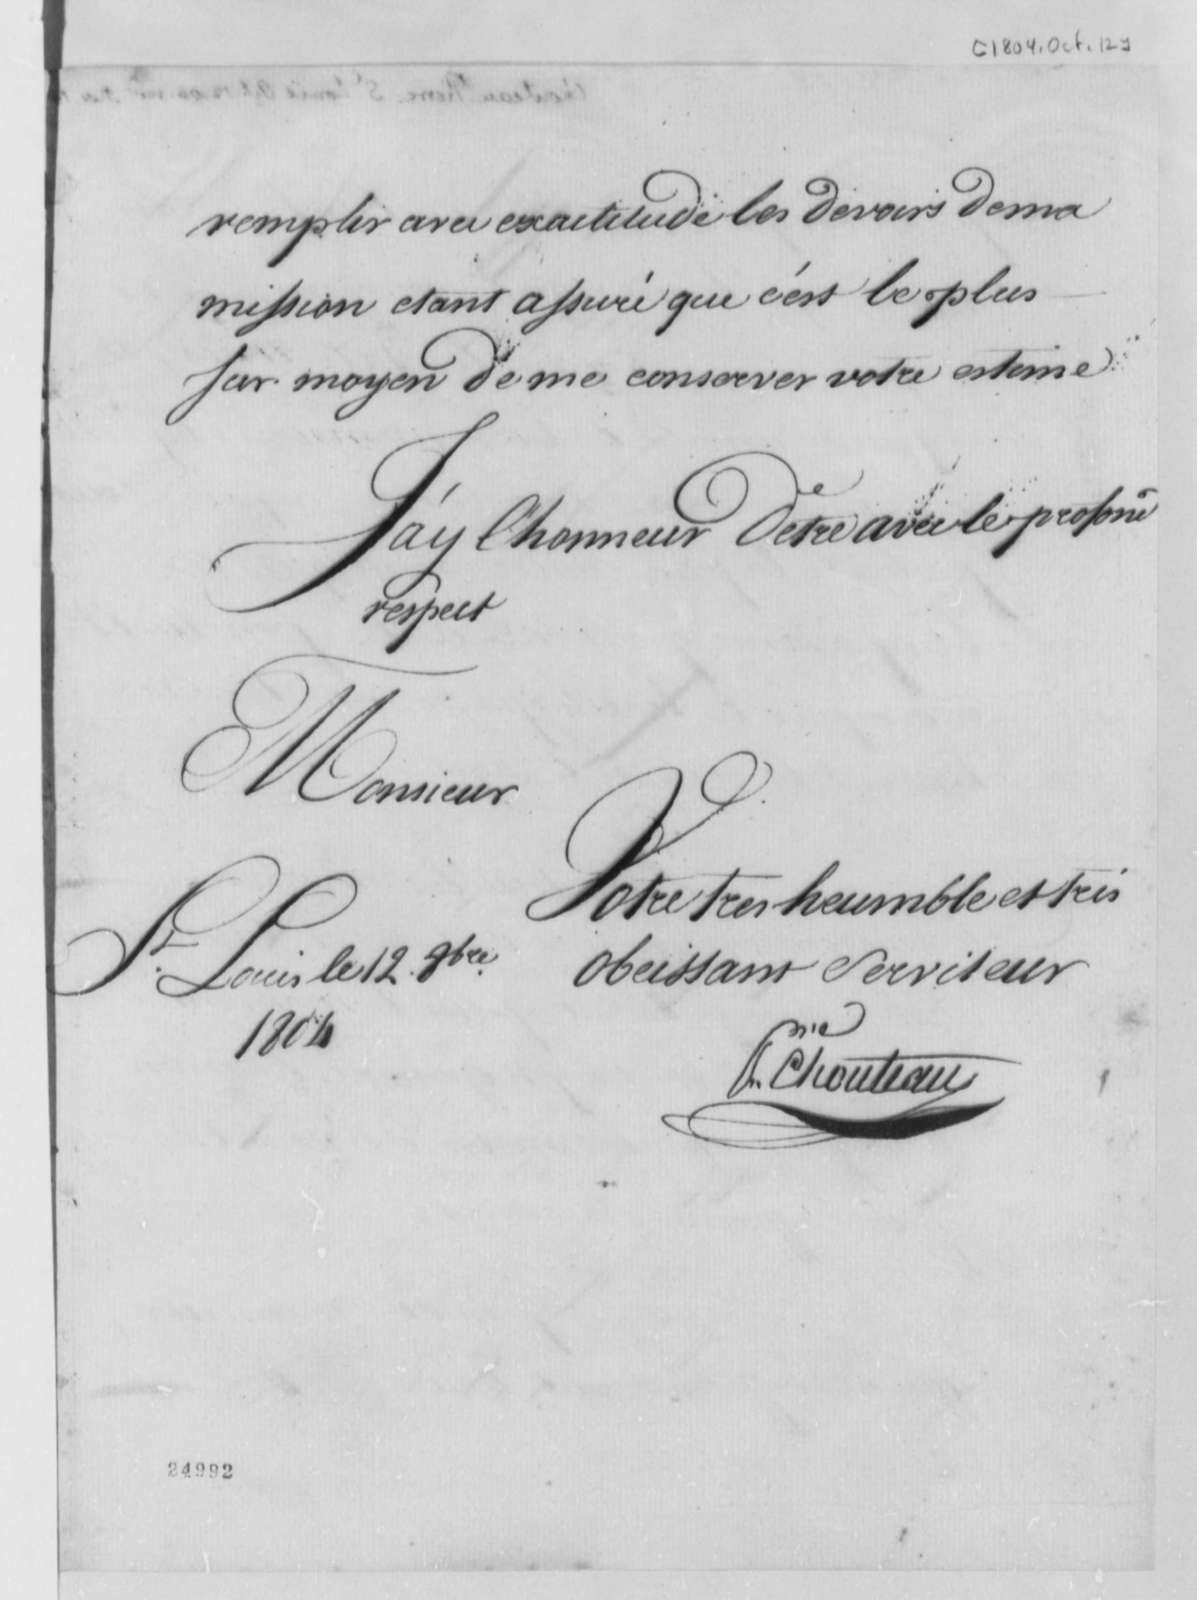 Pierre Chouteau to Thomas Jefferson, October 12, 1804, in French